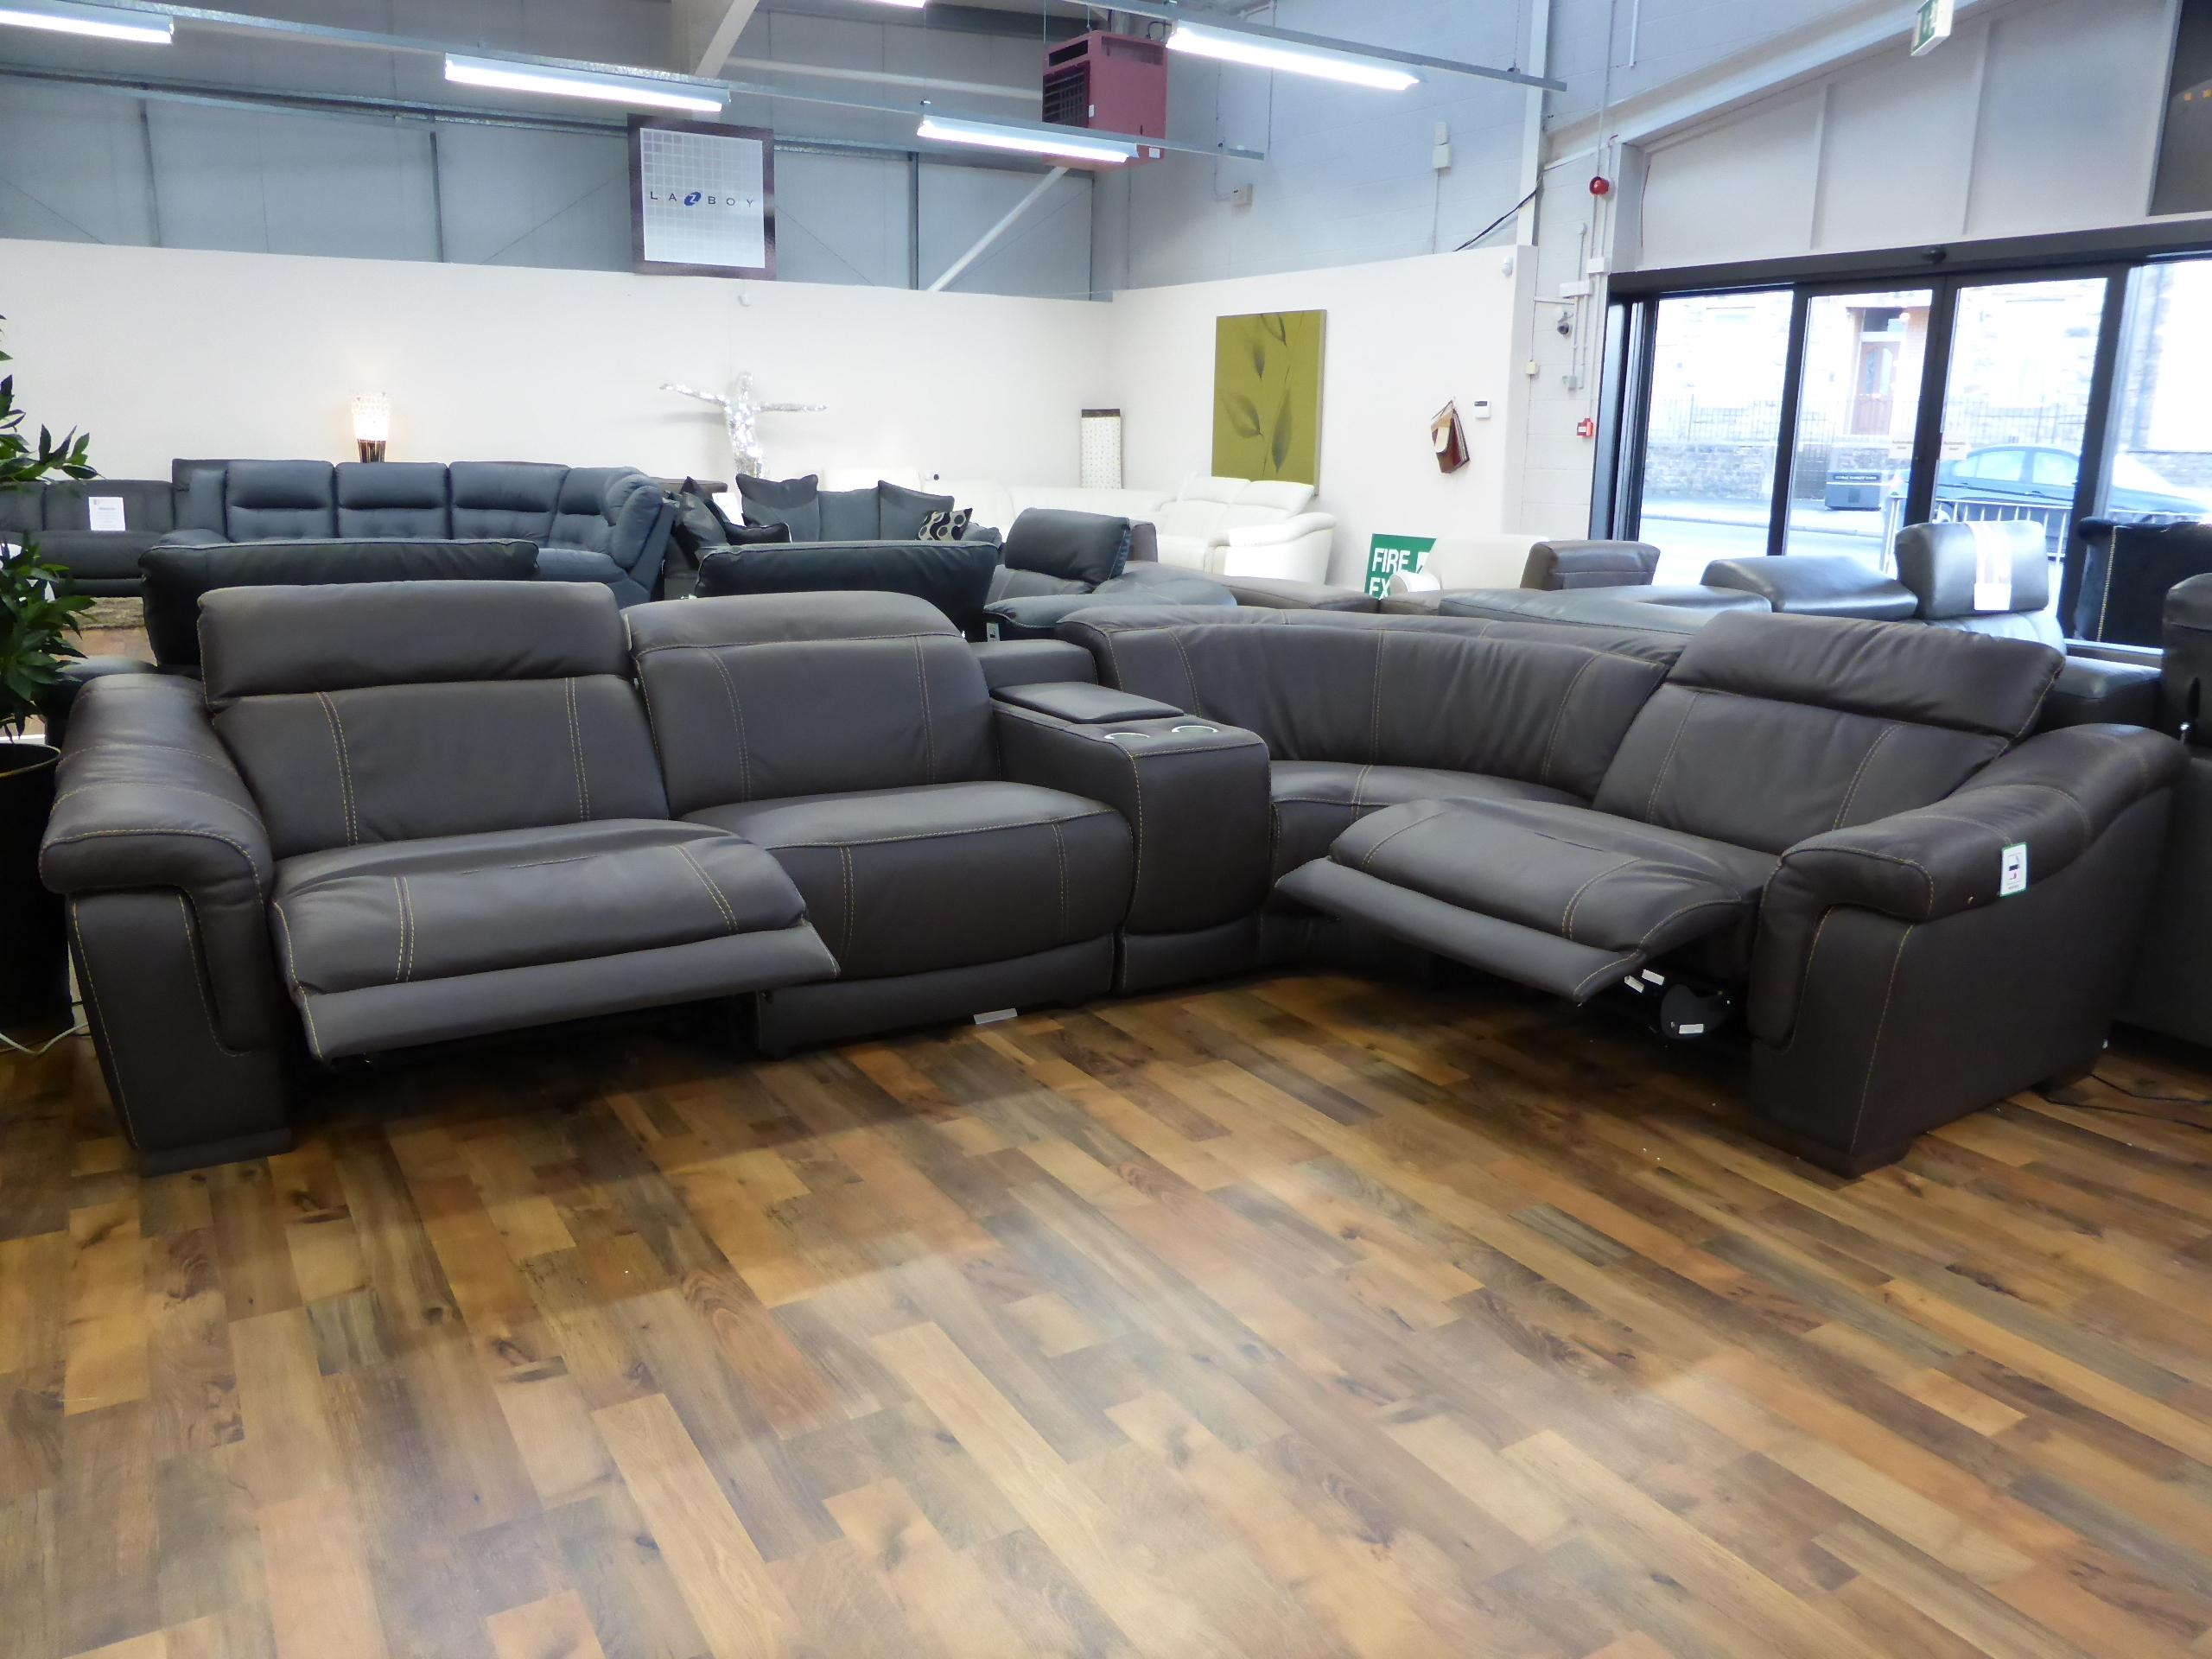 Italian Leather Reclining Sofa | Sofa Gallery | Kengire With Regard To Italian Recliner Sofas (Image 7 of 20)